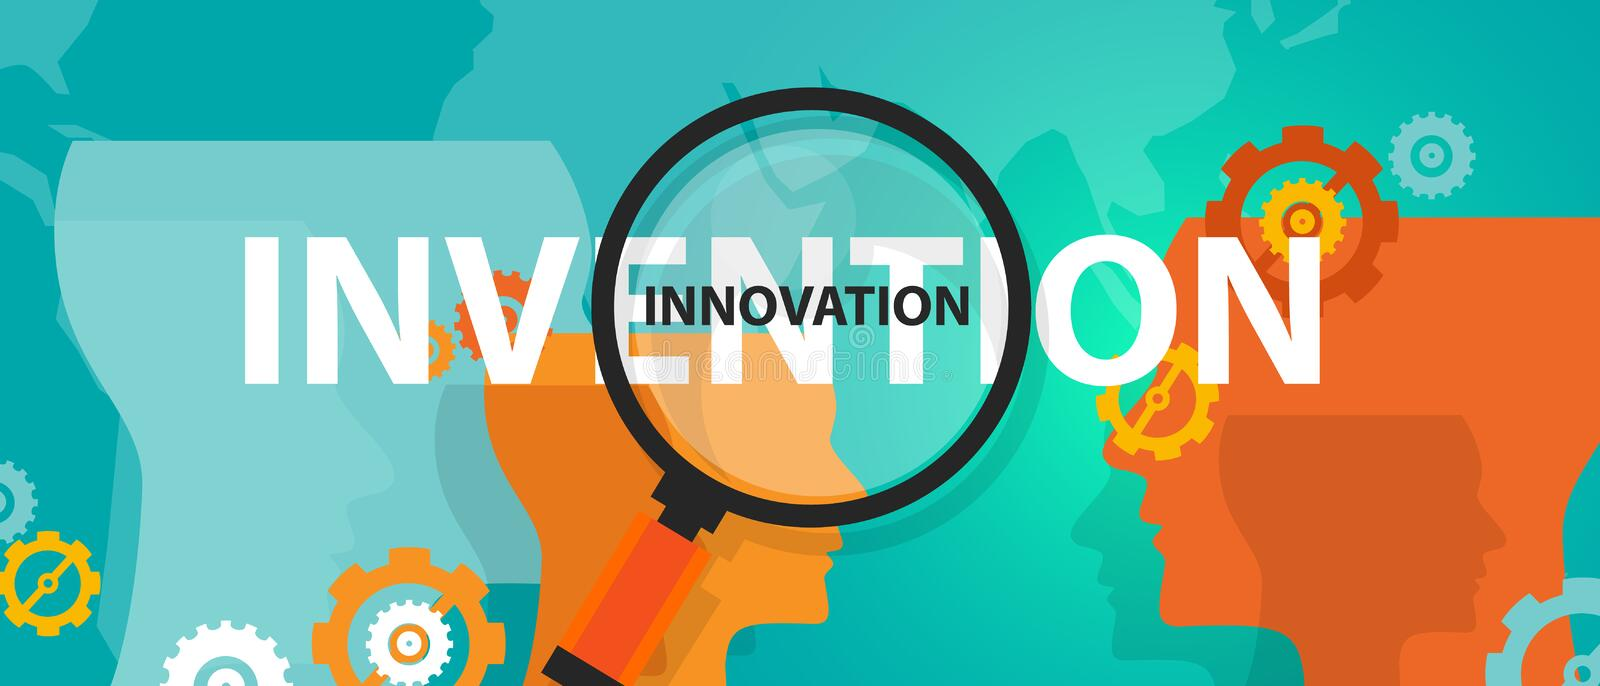 Innovation vs invention concept of thinking analysis idea creative mind. Vector royalty free illustration